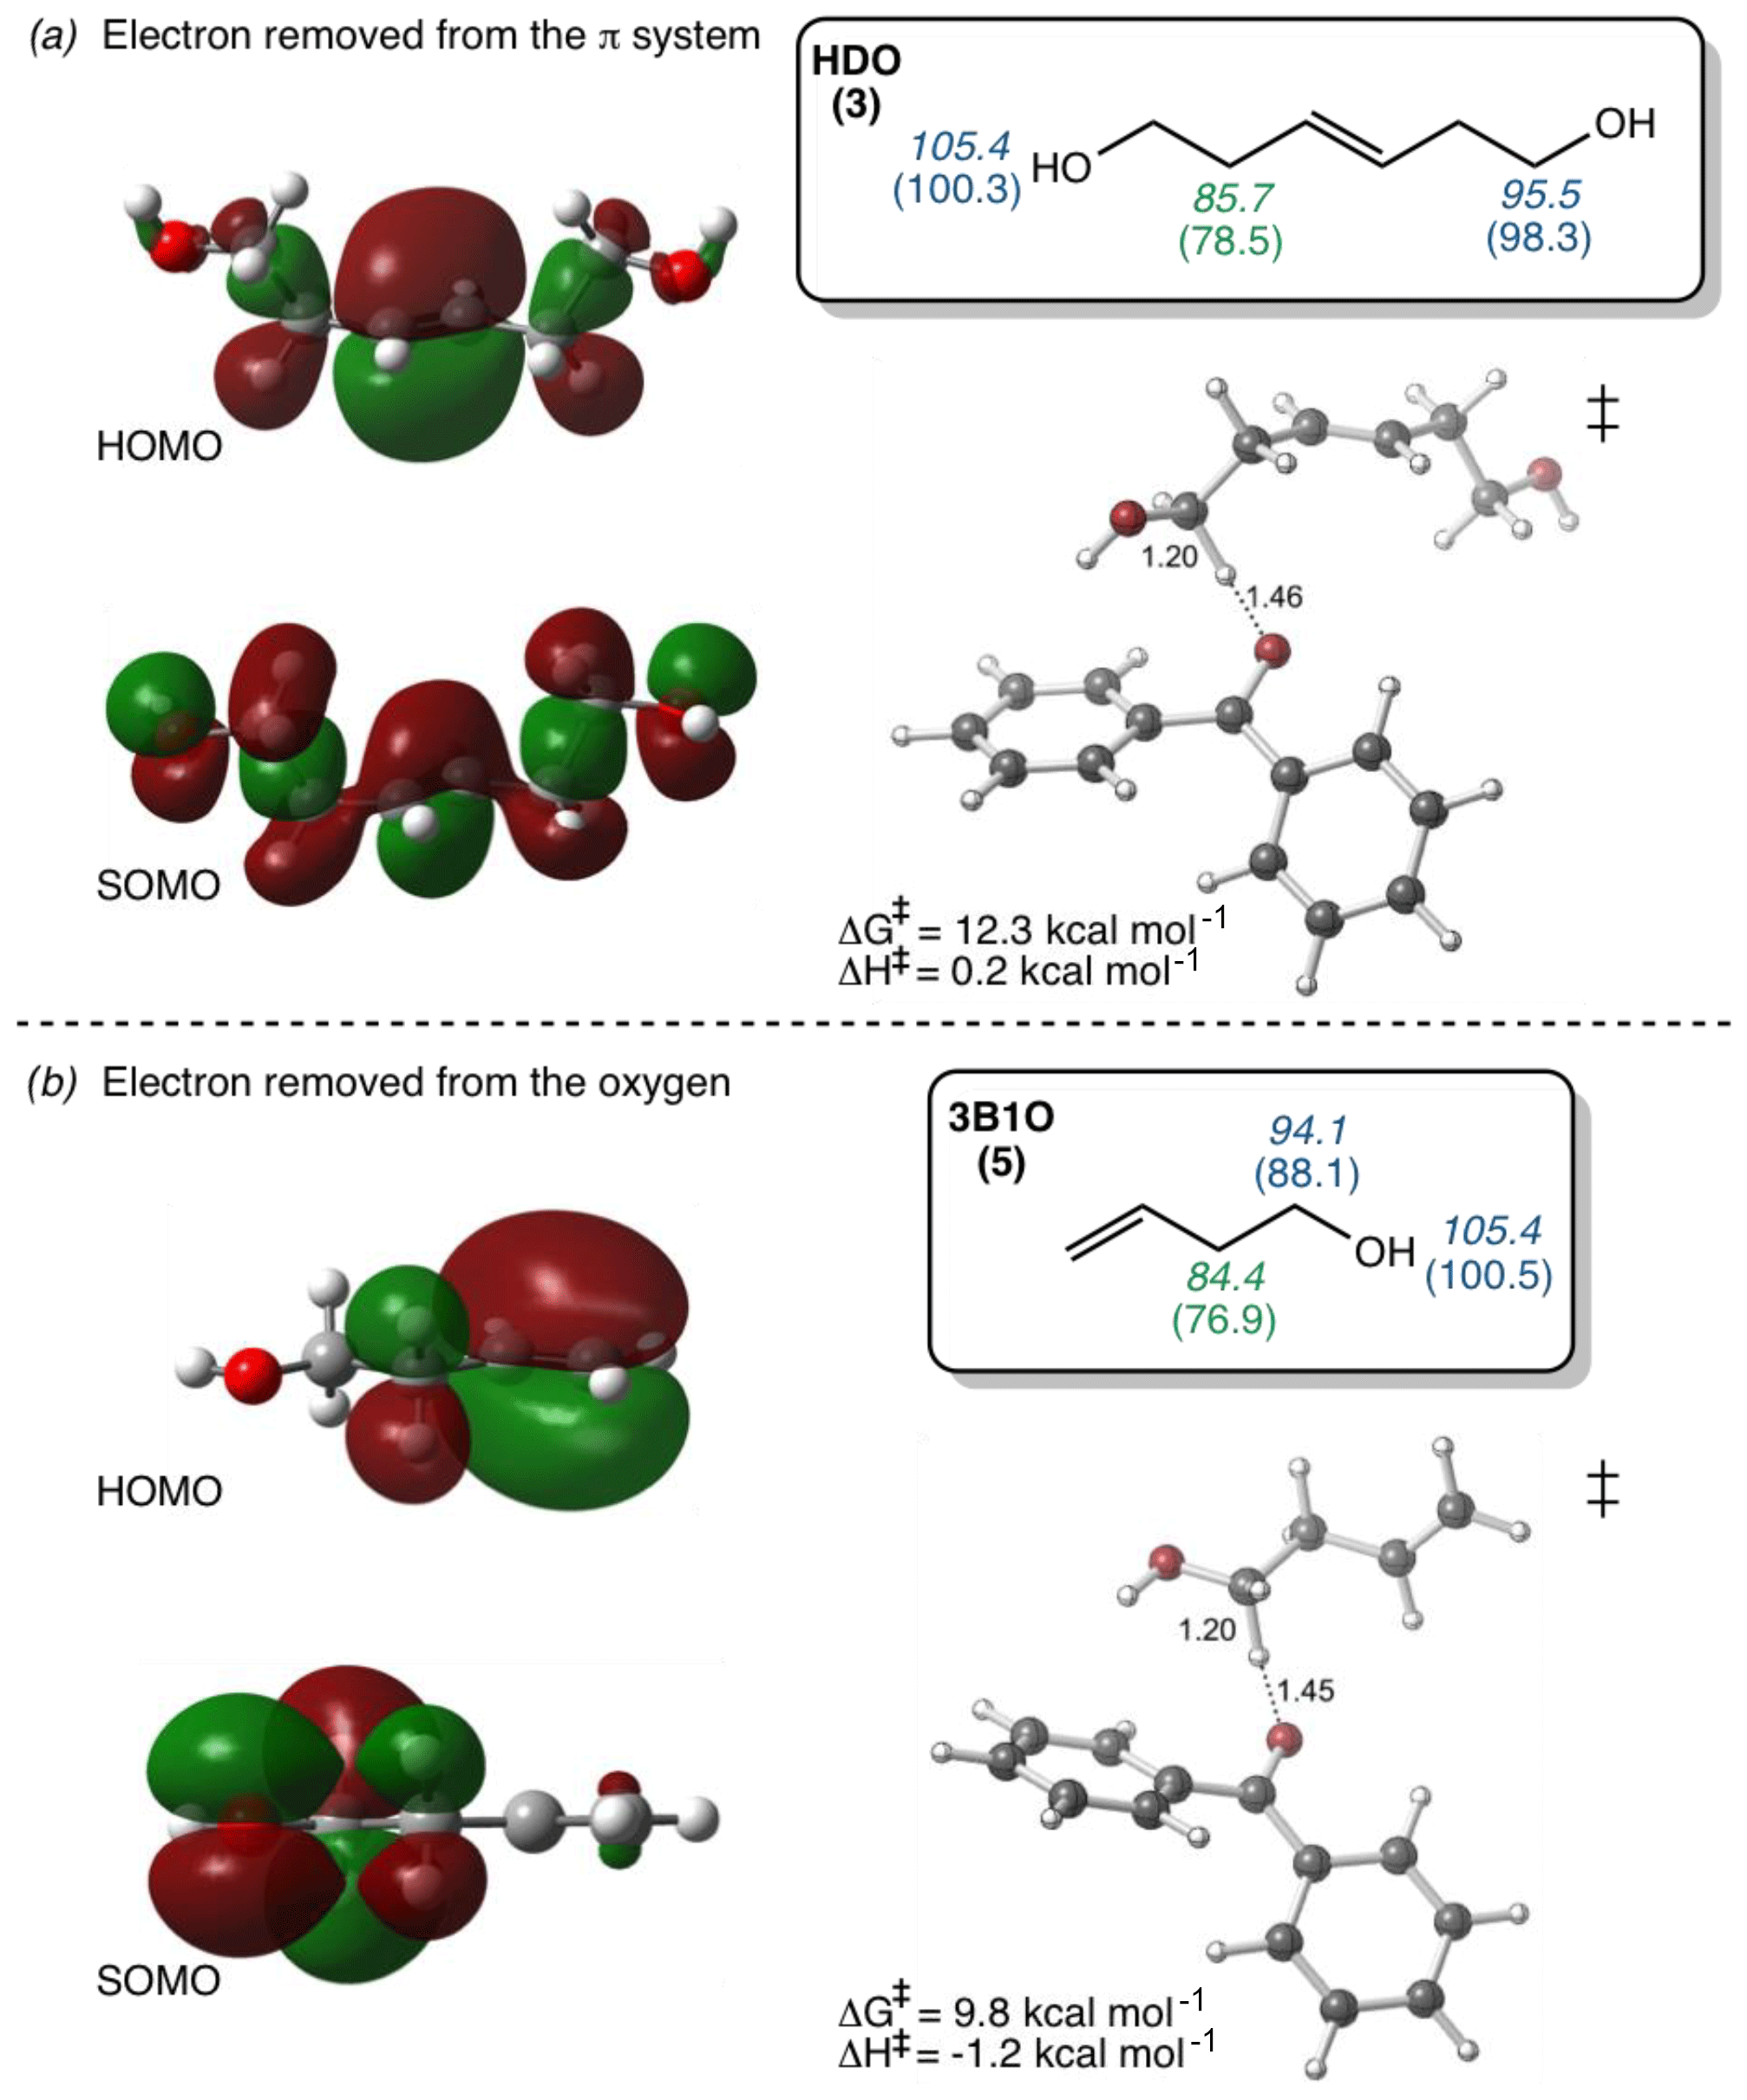 ACP - Aqueous reactions of organic triplet excited states with